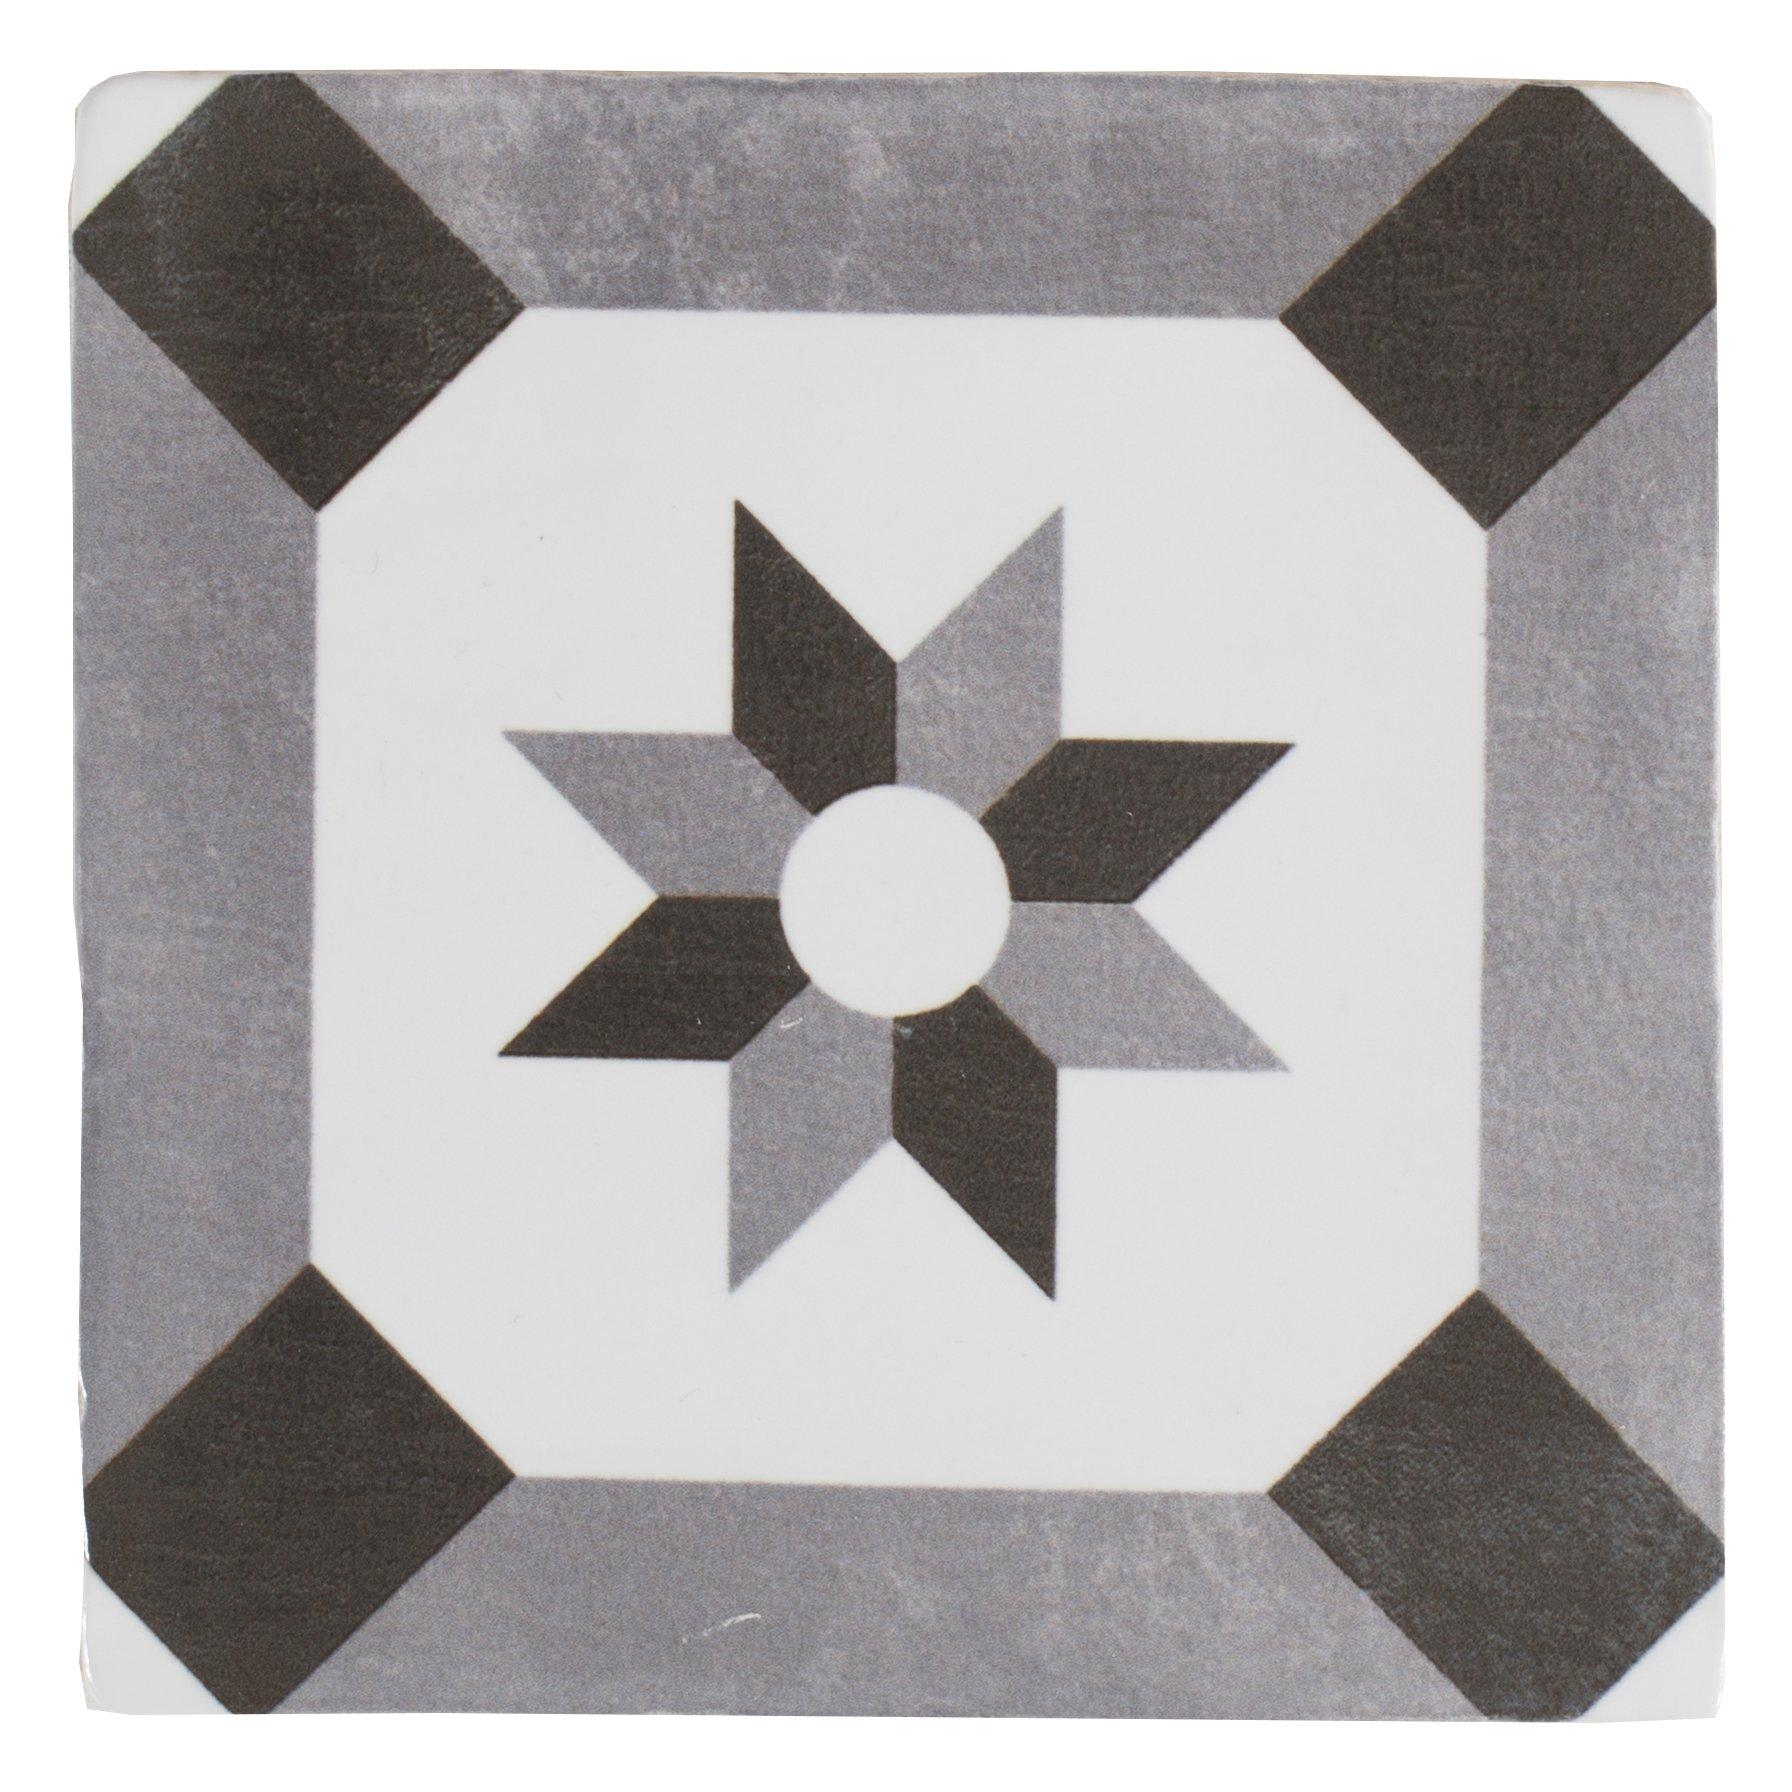 Black And White Ceramic Tile Floor Plain Tile White And Black Chess